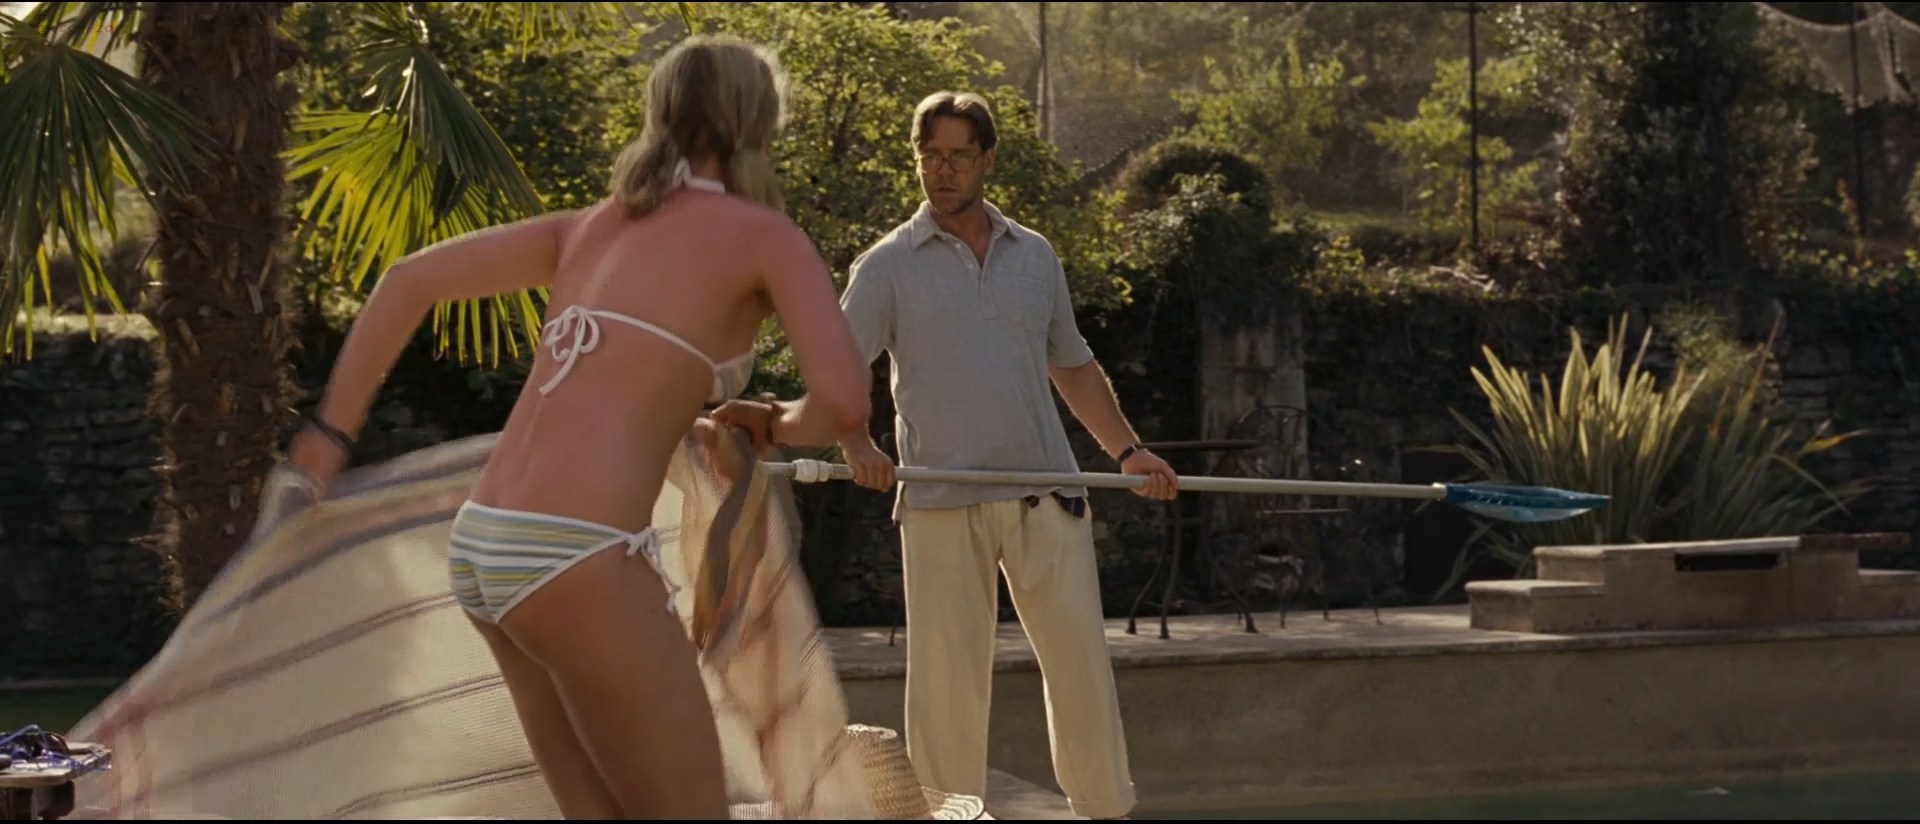 0110164410478_05_Abbie-Cornish-hot-in-bikini-and-nude-butt-crack-and-Marion-Cotillard-sex-and-lingerie-A-Good-Year-2006-hd1080p-3.jpg